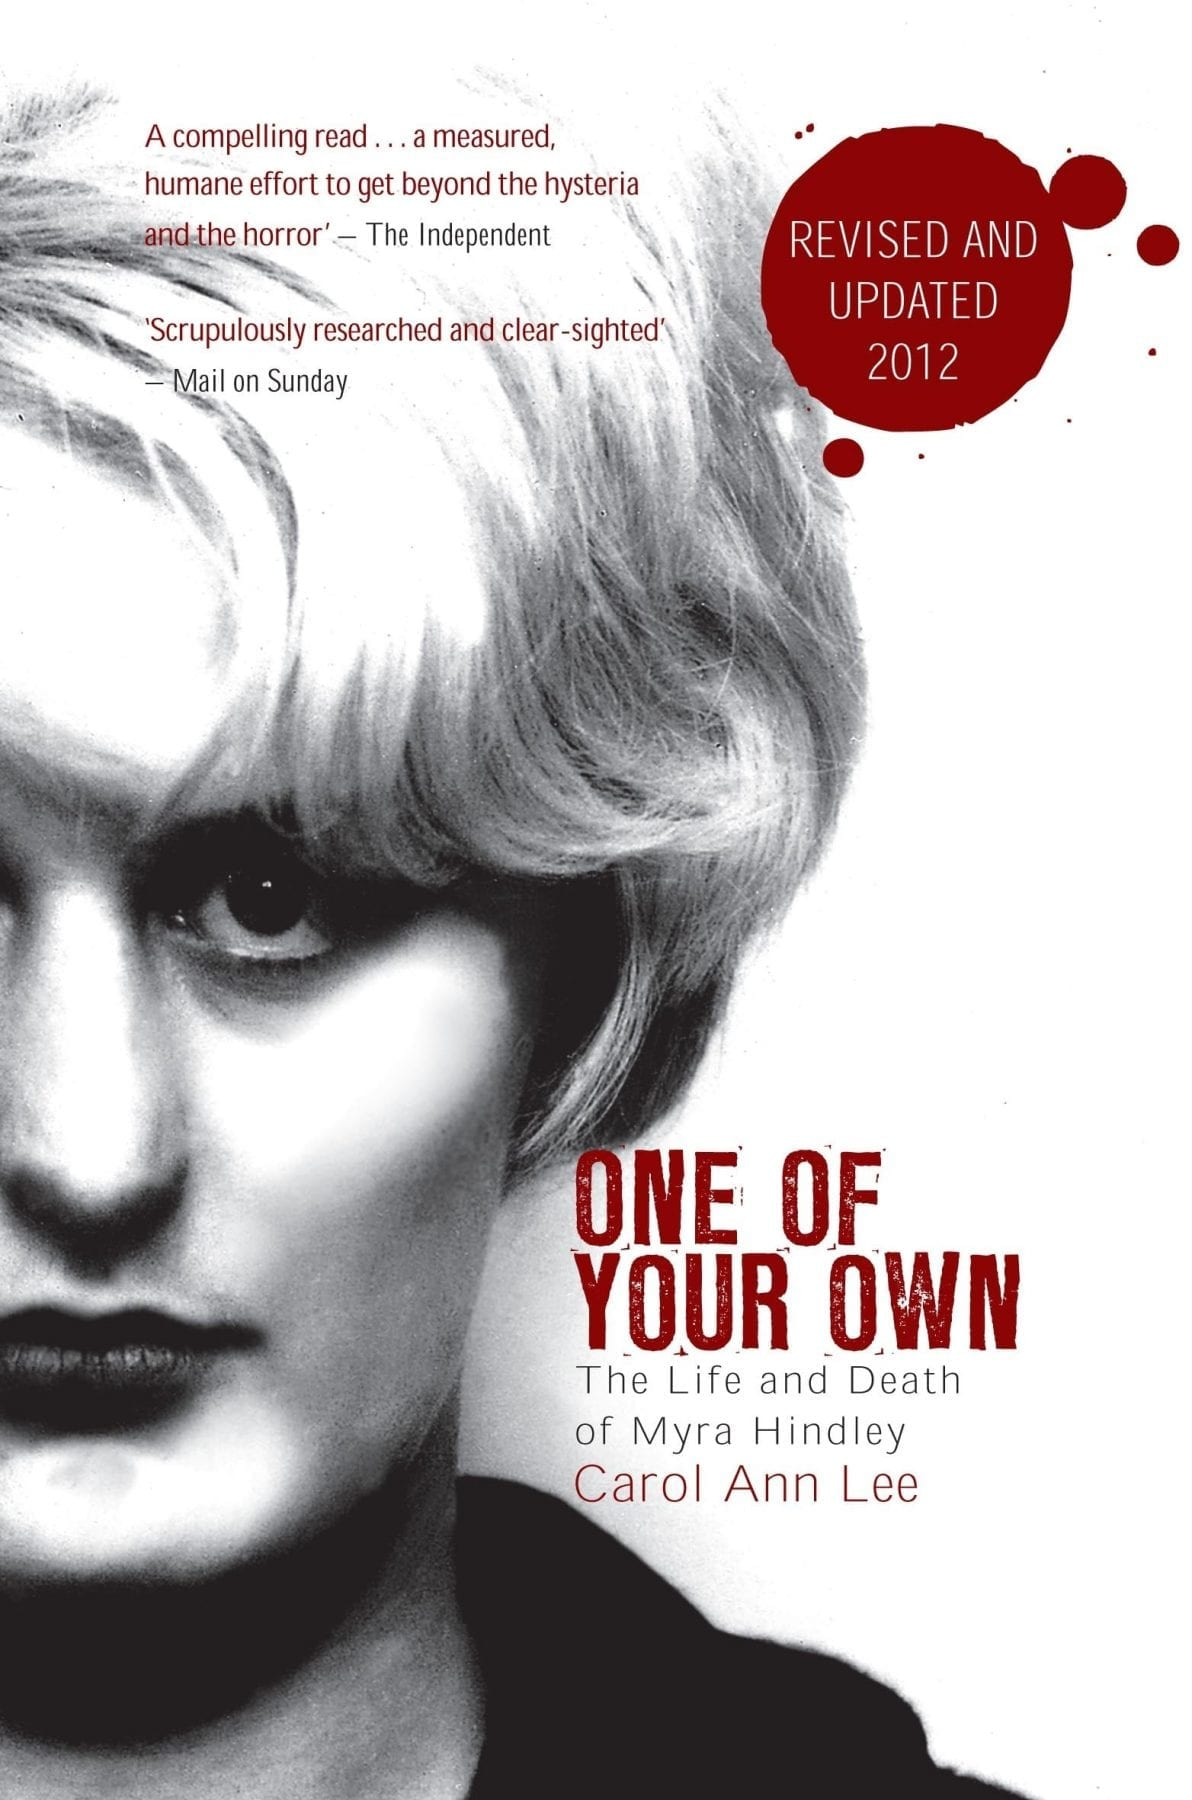 One of Your Own- The Life and Death of Myra Hindley by Carol Ann Lee